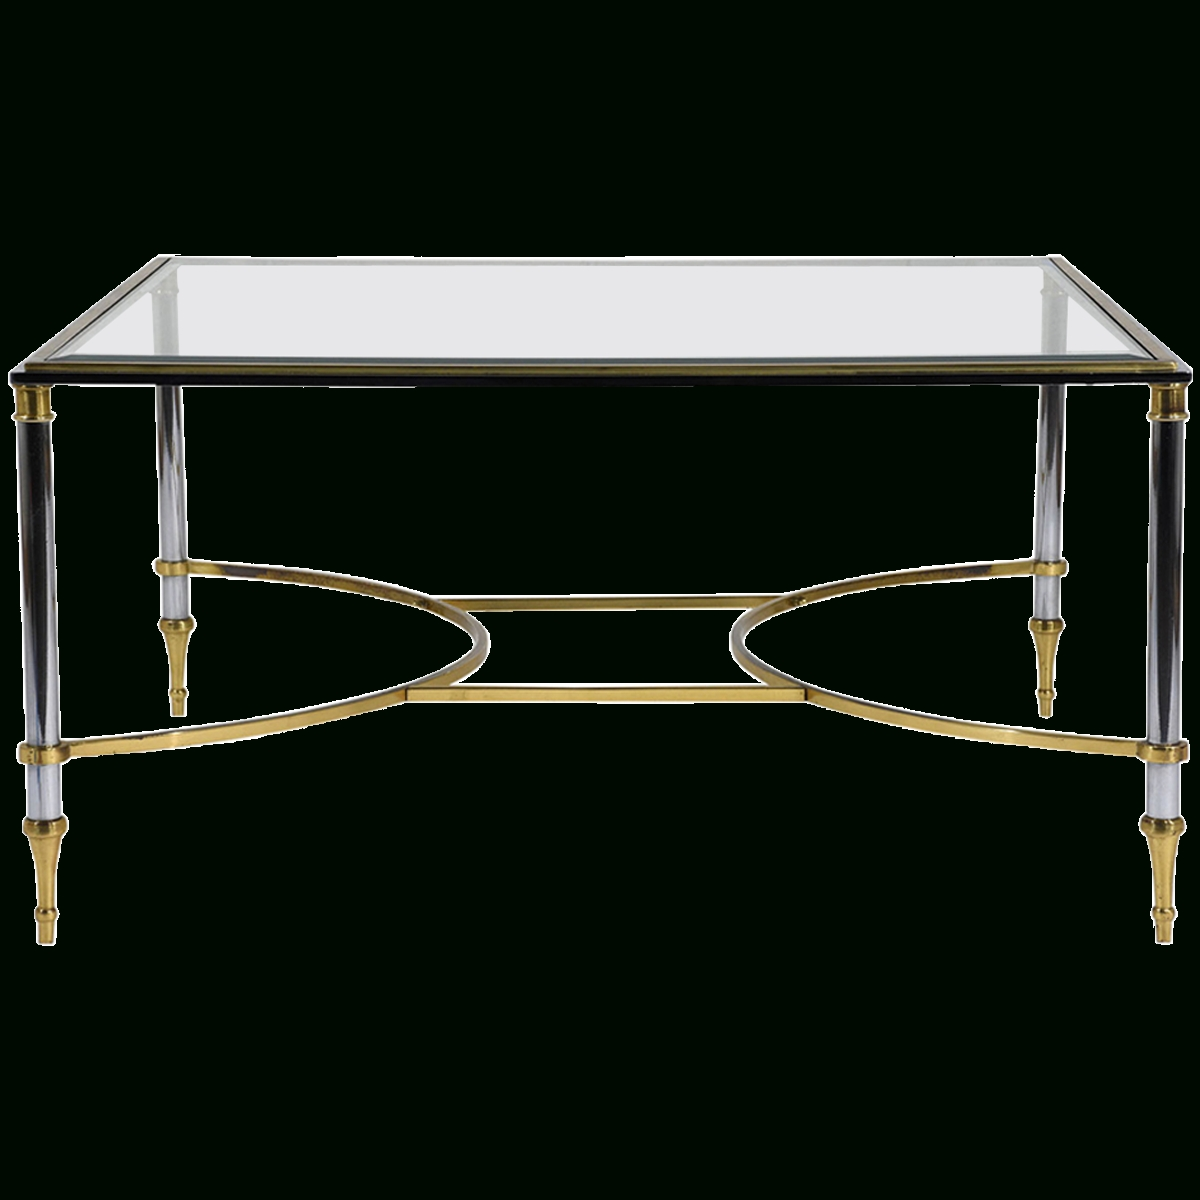 Viyet - Designer Furniture - Tables - Vintage Jansen Style Chrome regarding Chrome and Glass Coffee Tables (Image 30 of 30)